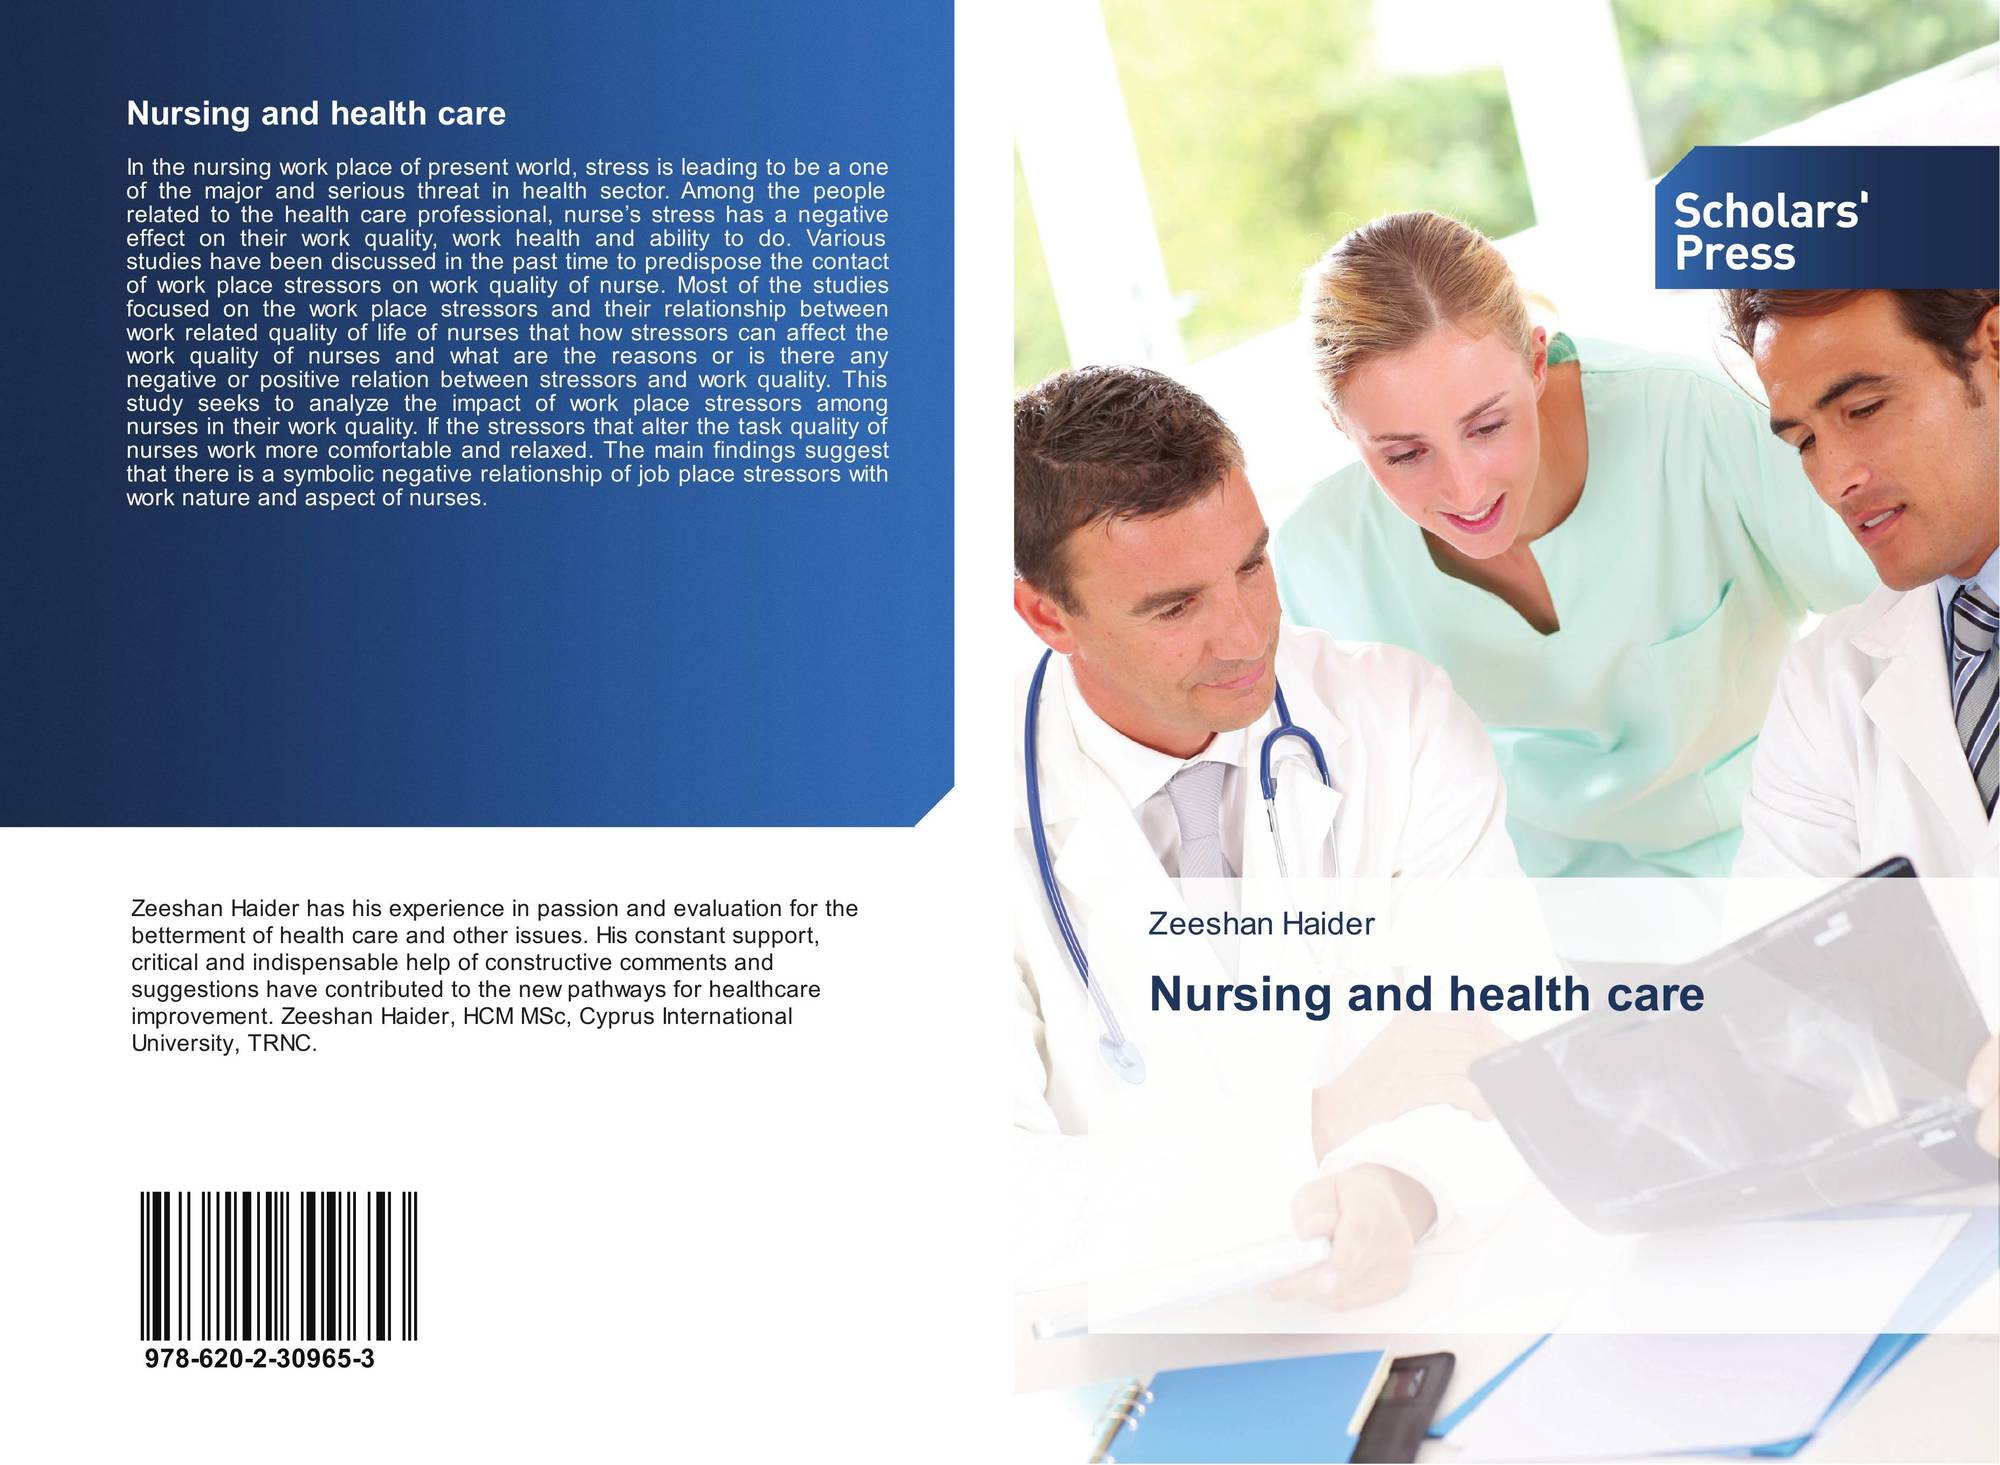 a study of nursing shortage This study surveyed registered nurses, physicians, and hospital chief executive officers (ceos) and chief nursing officers (cnos) regarding their perception of the impact of nursing shortages on patient safety and quality of care.